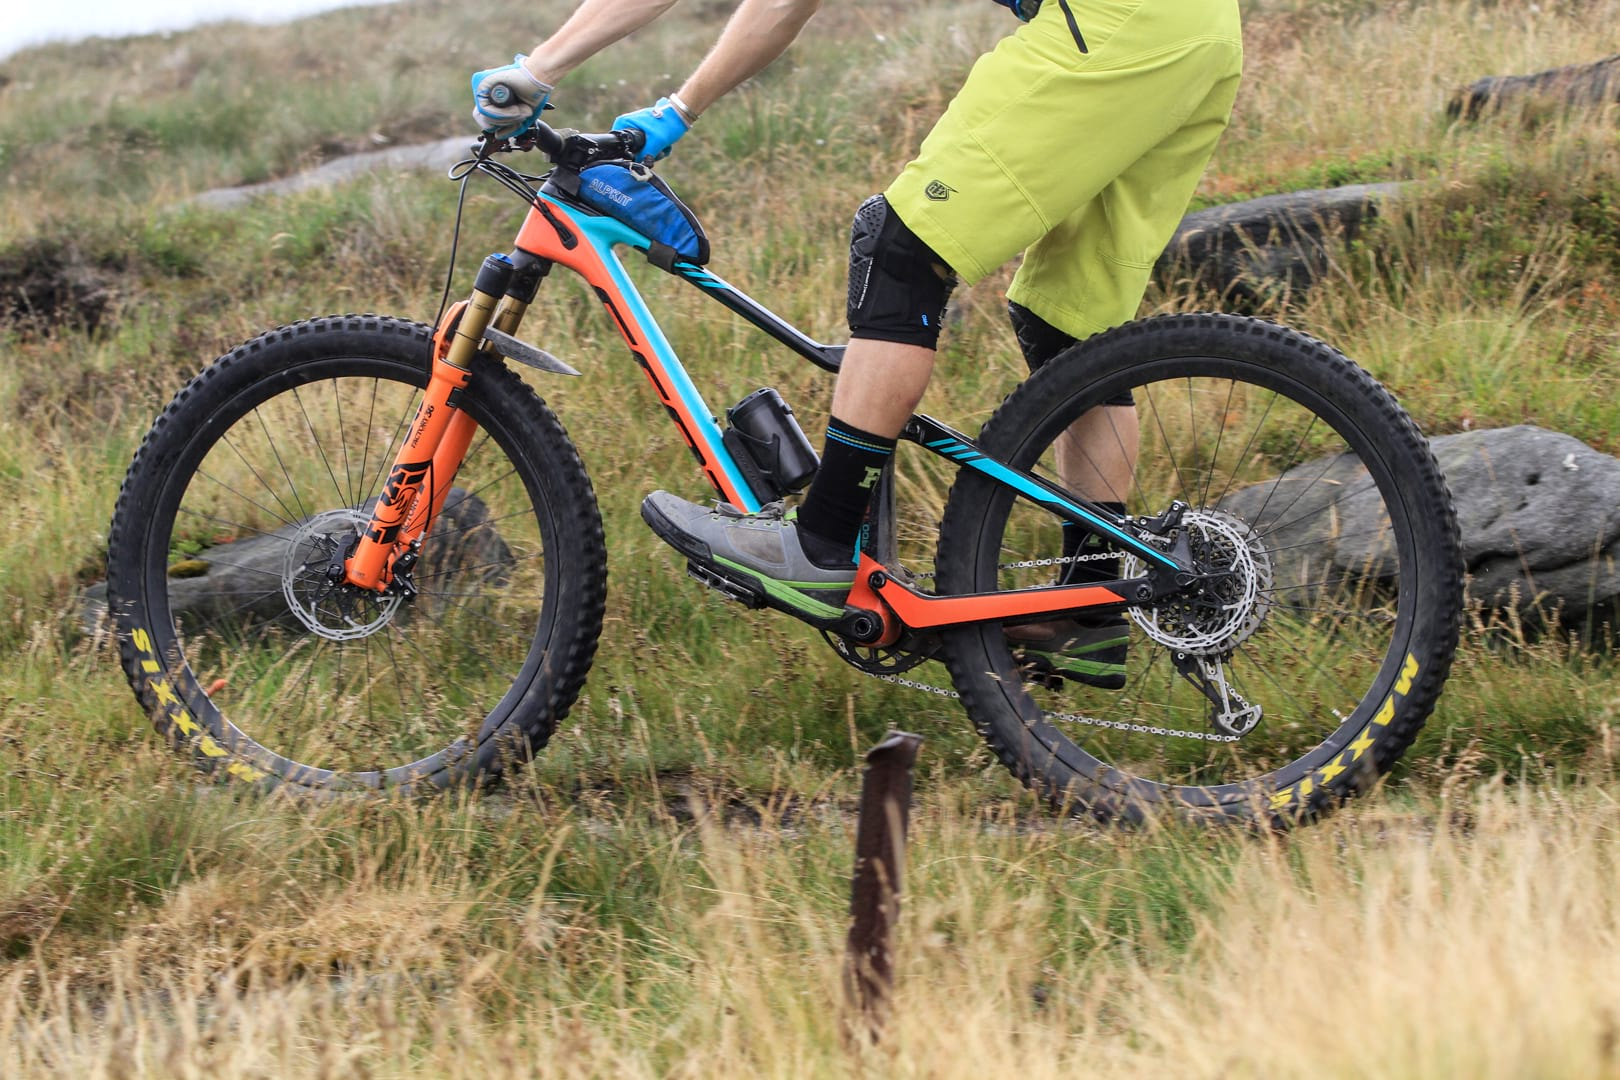 b82fa9e78ec Long Term Review: Did Wil ruin the Scott Genius 900 Tuned test bike with  these 3 changes? - Singletrack Magazine